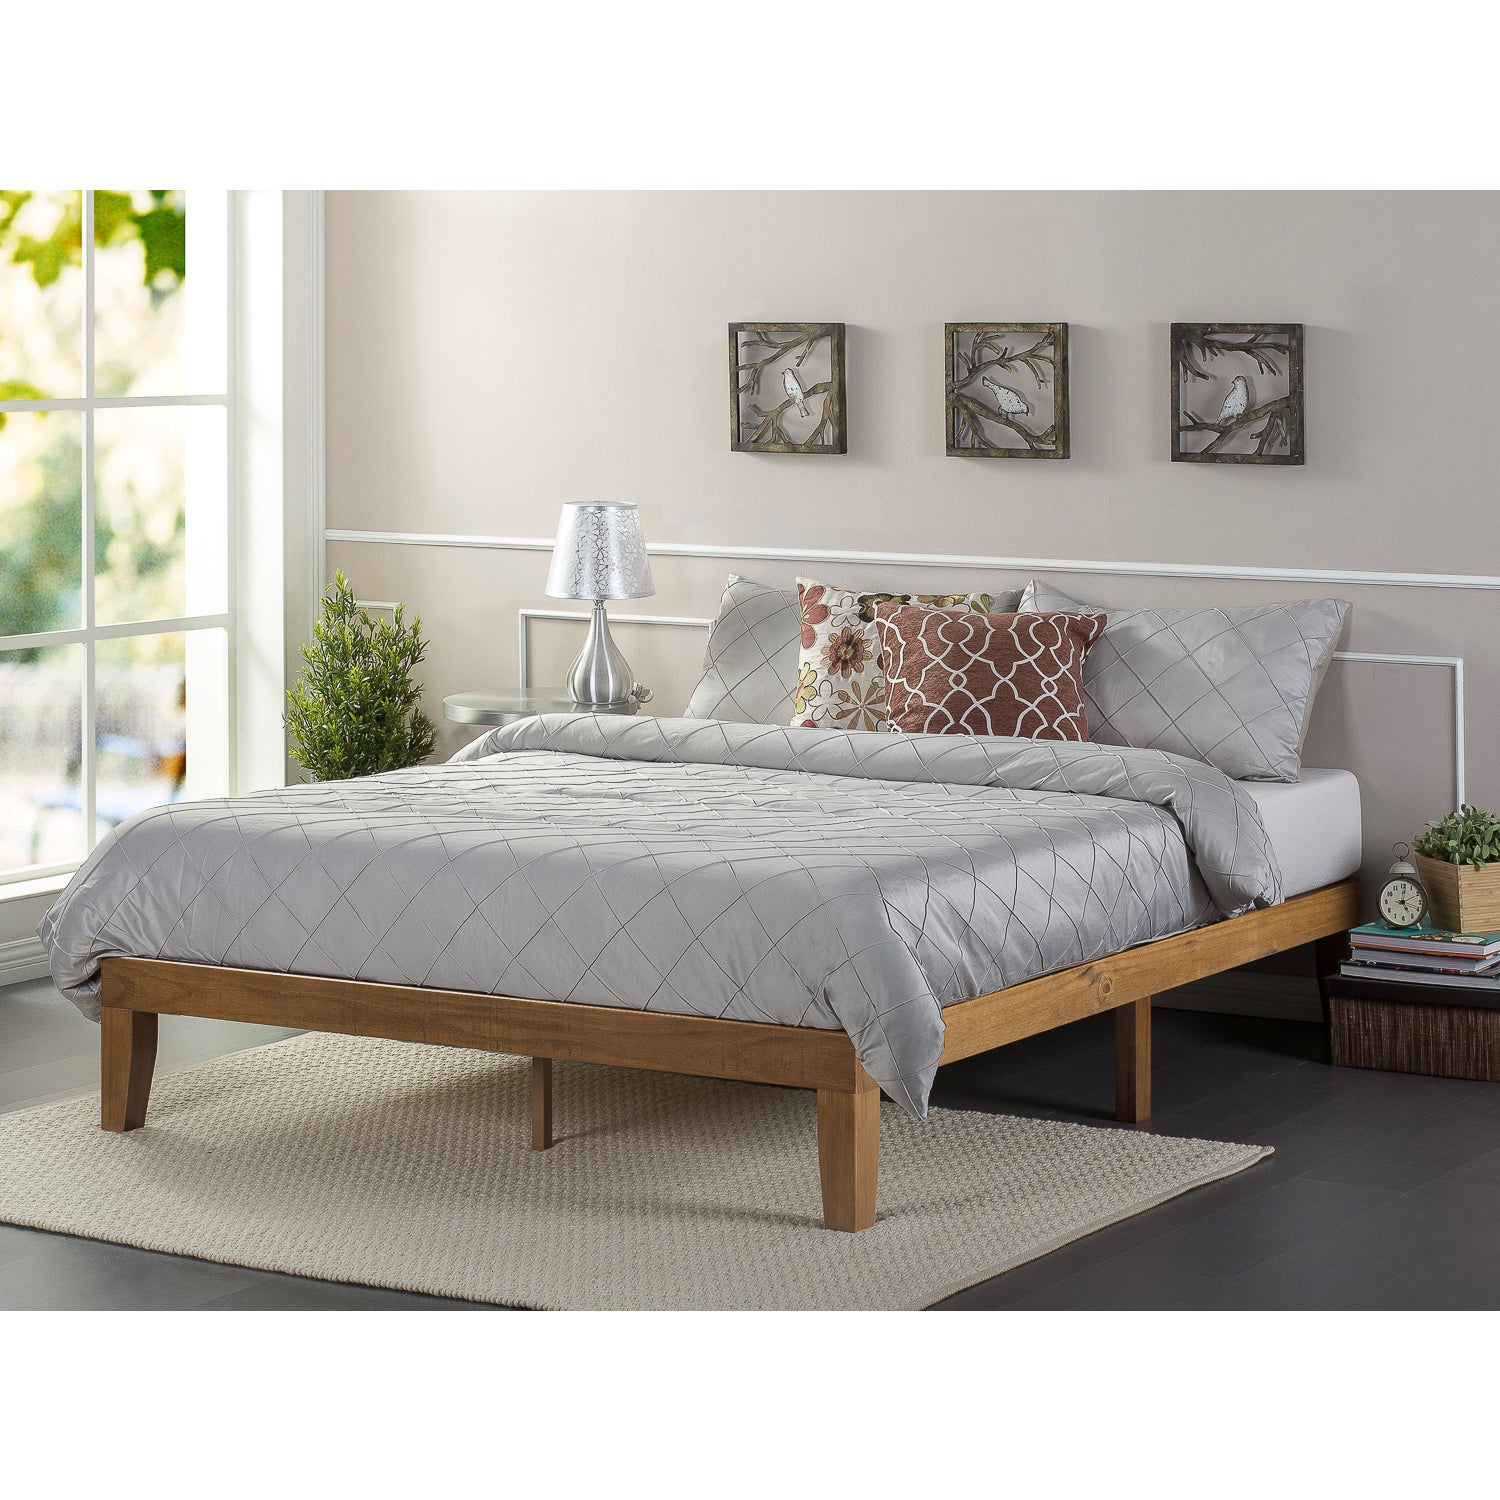 Priage Solid Wood Platform Bed Rustic Pine Free Shipping Today